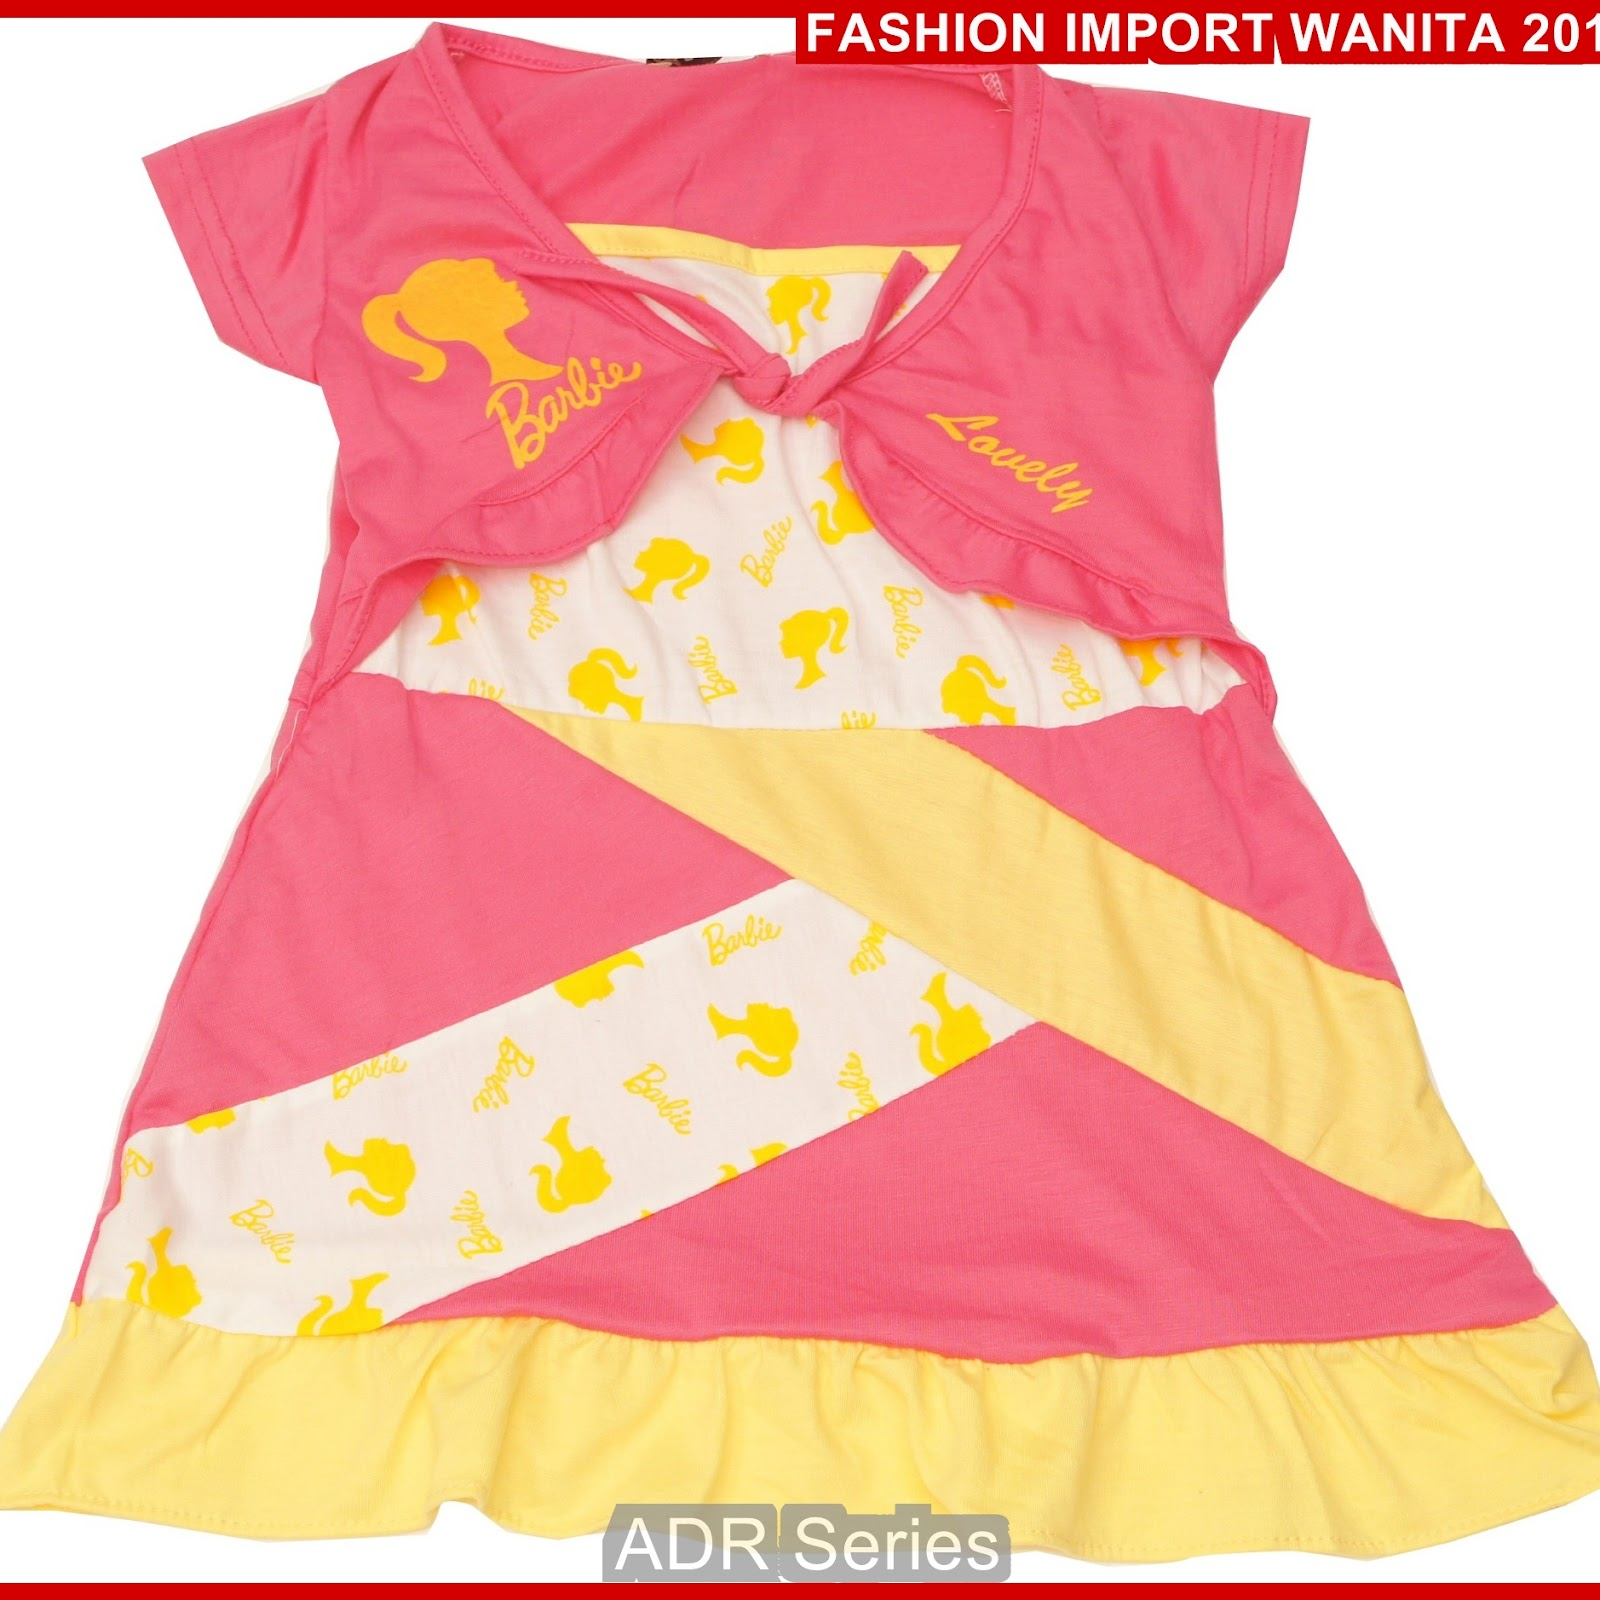 ADR169 Dress Wanita Salem Anak BB Import BMGShop